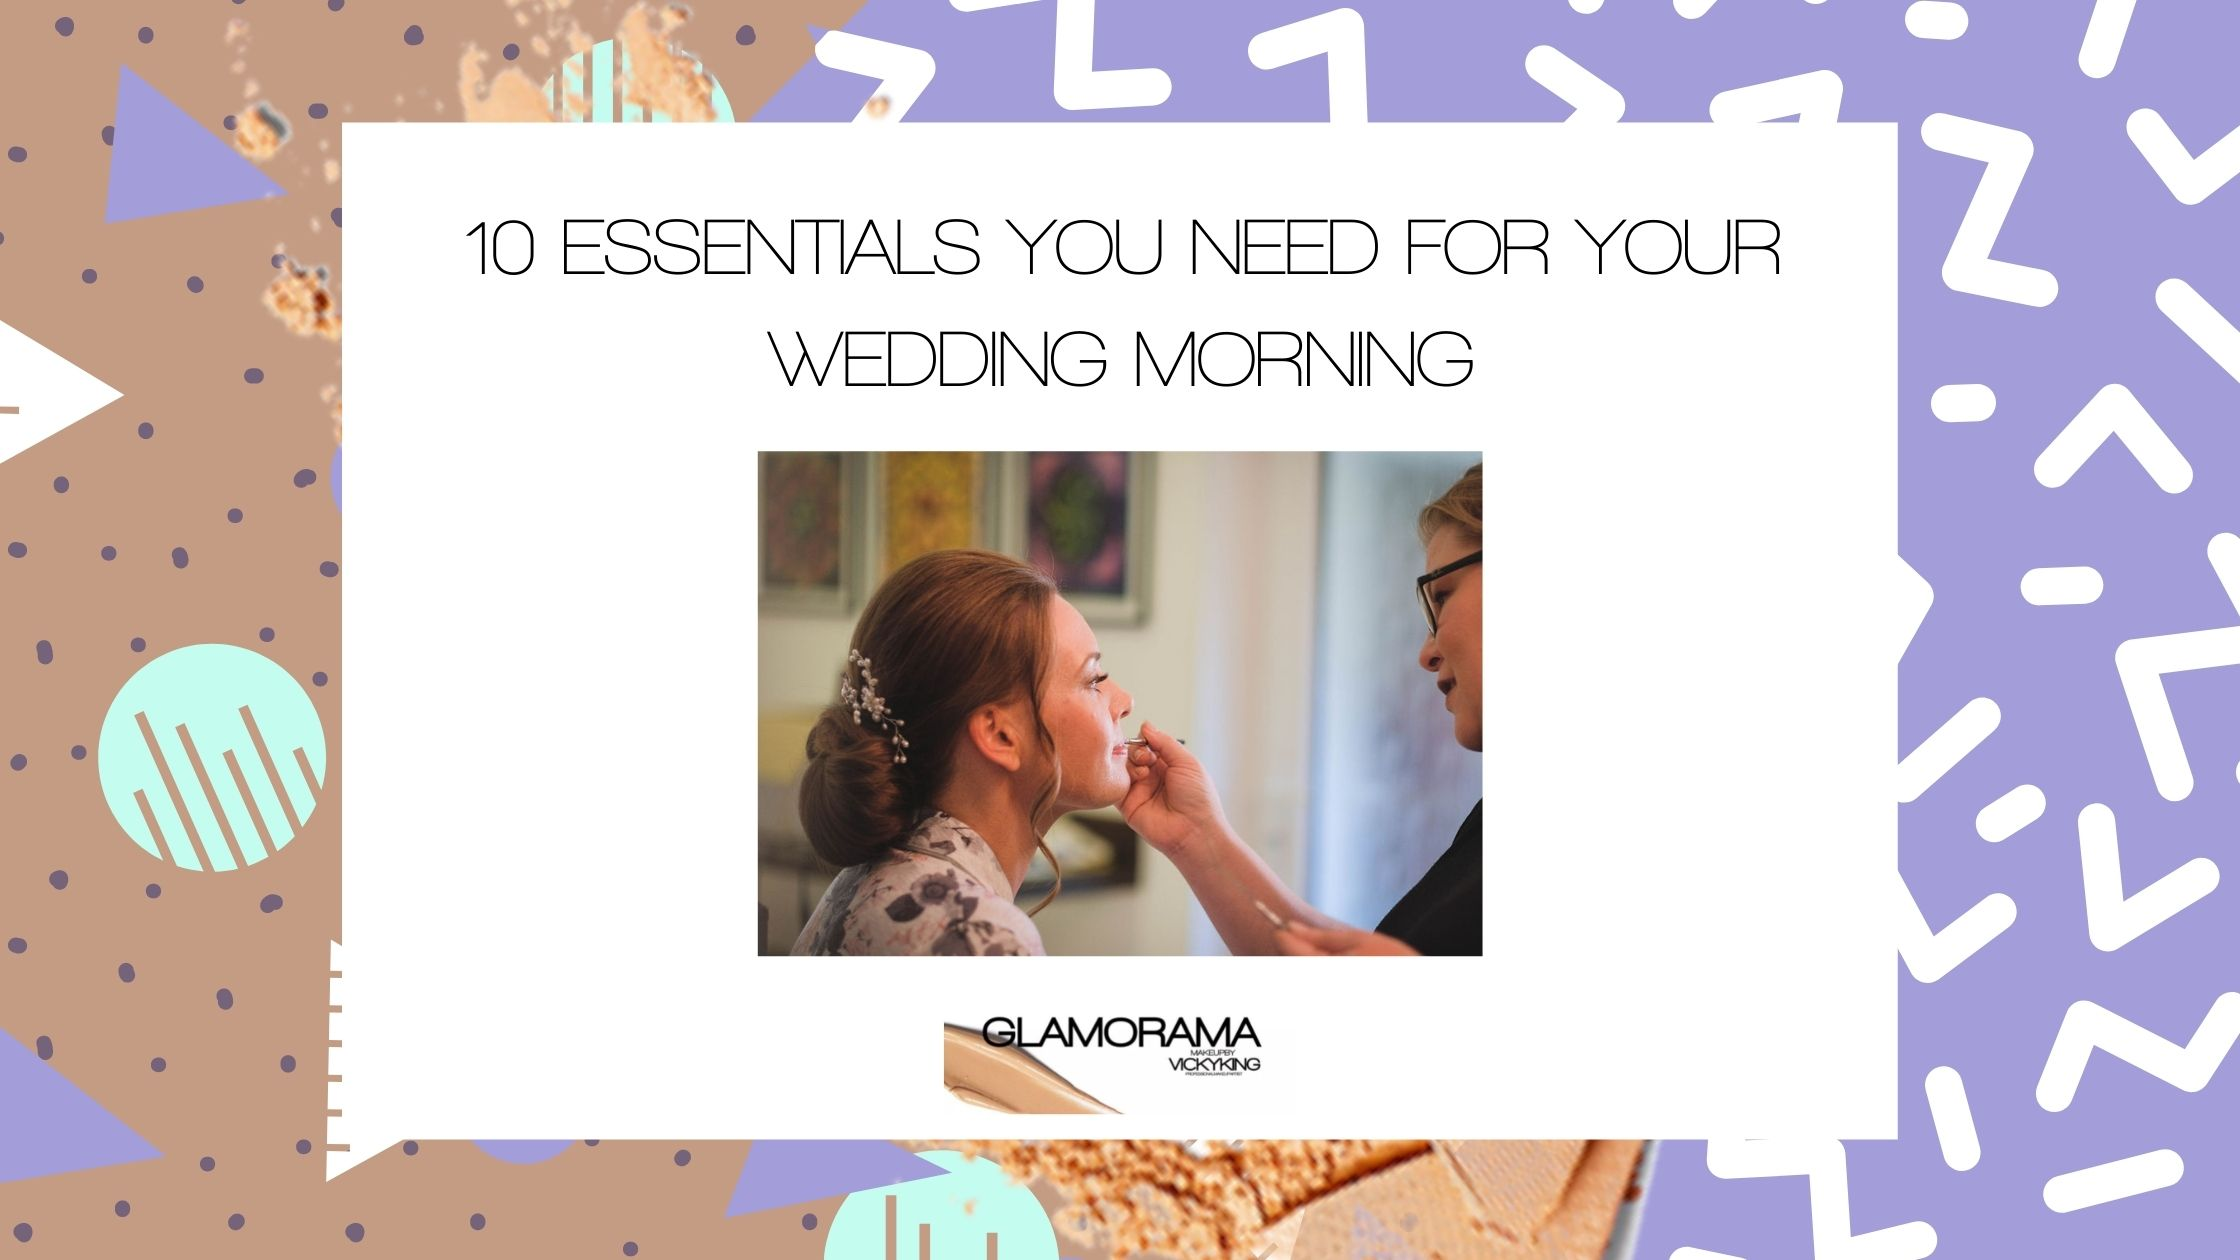 10 Essentials You Need For Your Wedding Morning - Wedding Tips from a Liverpool Wedding Makeup Artist